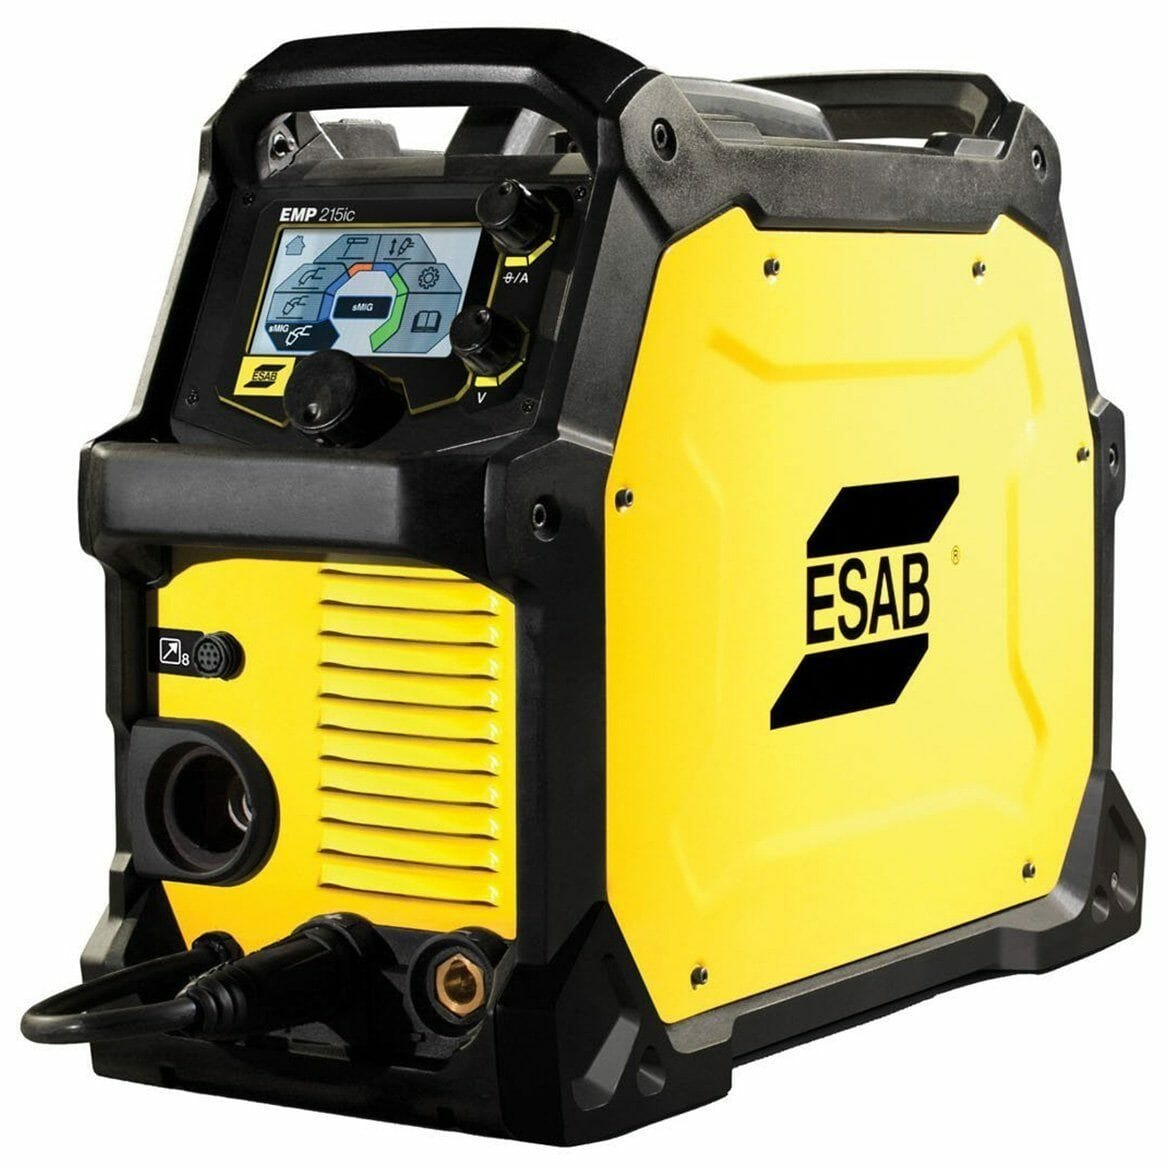 ESAB Rebel EMP 216ic